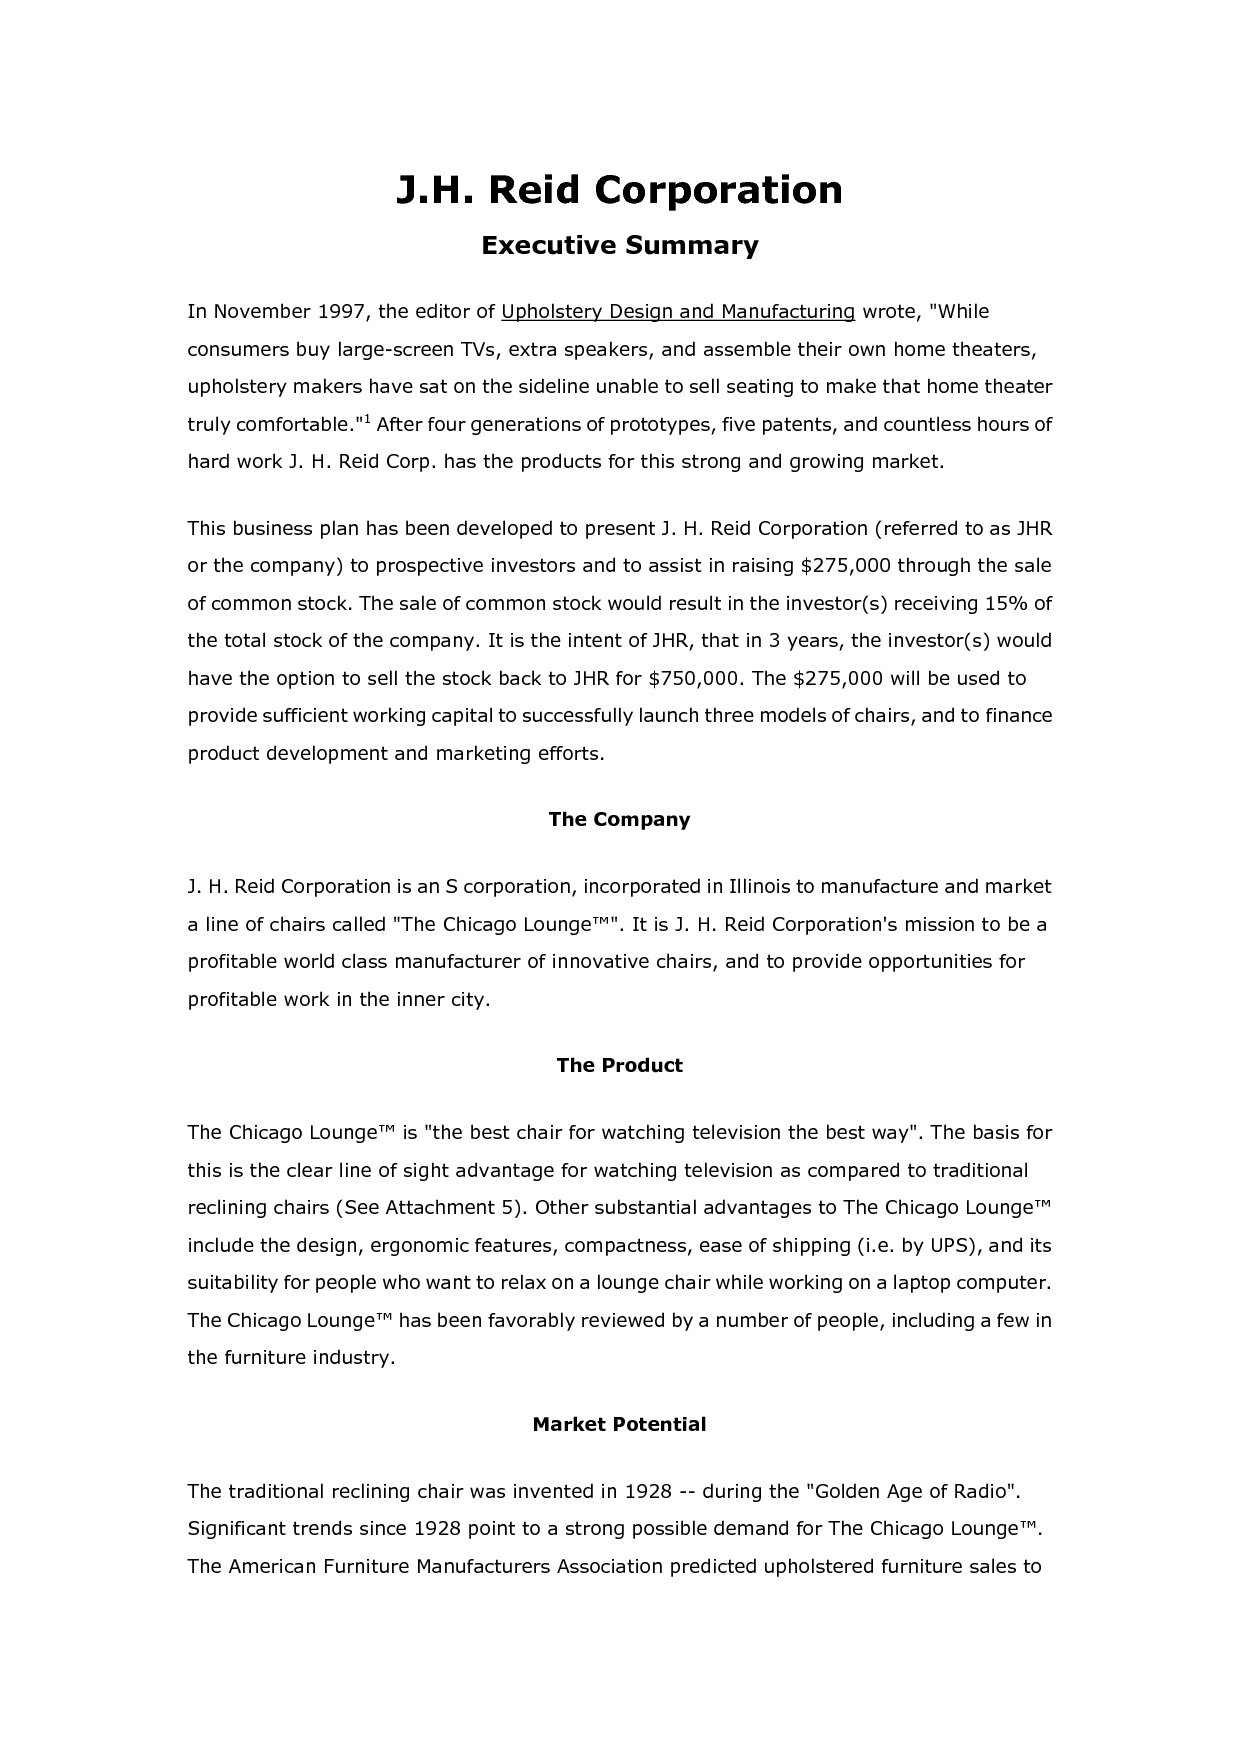 sample proposal essay examples of a proposal essay apa example examples of a proposal essayproposal essays. Resume Example. Resume CV Cover Letter